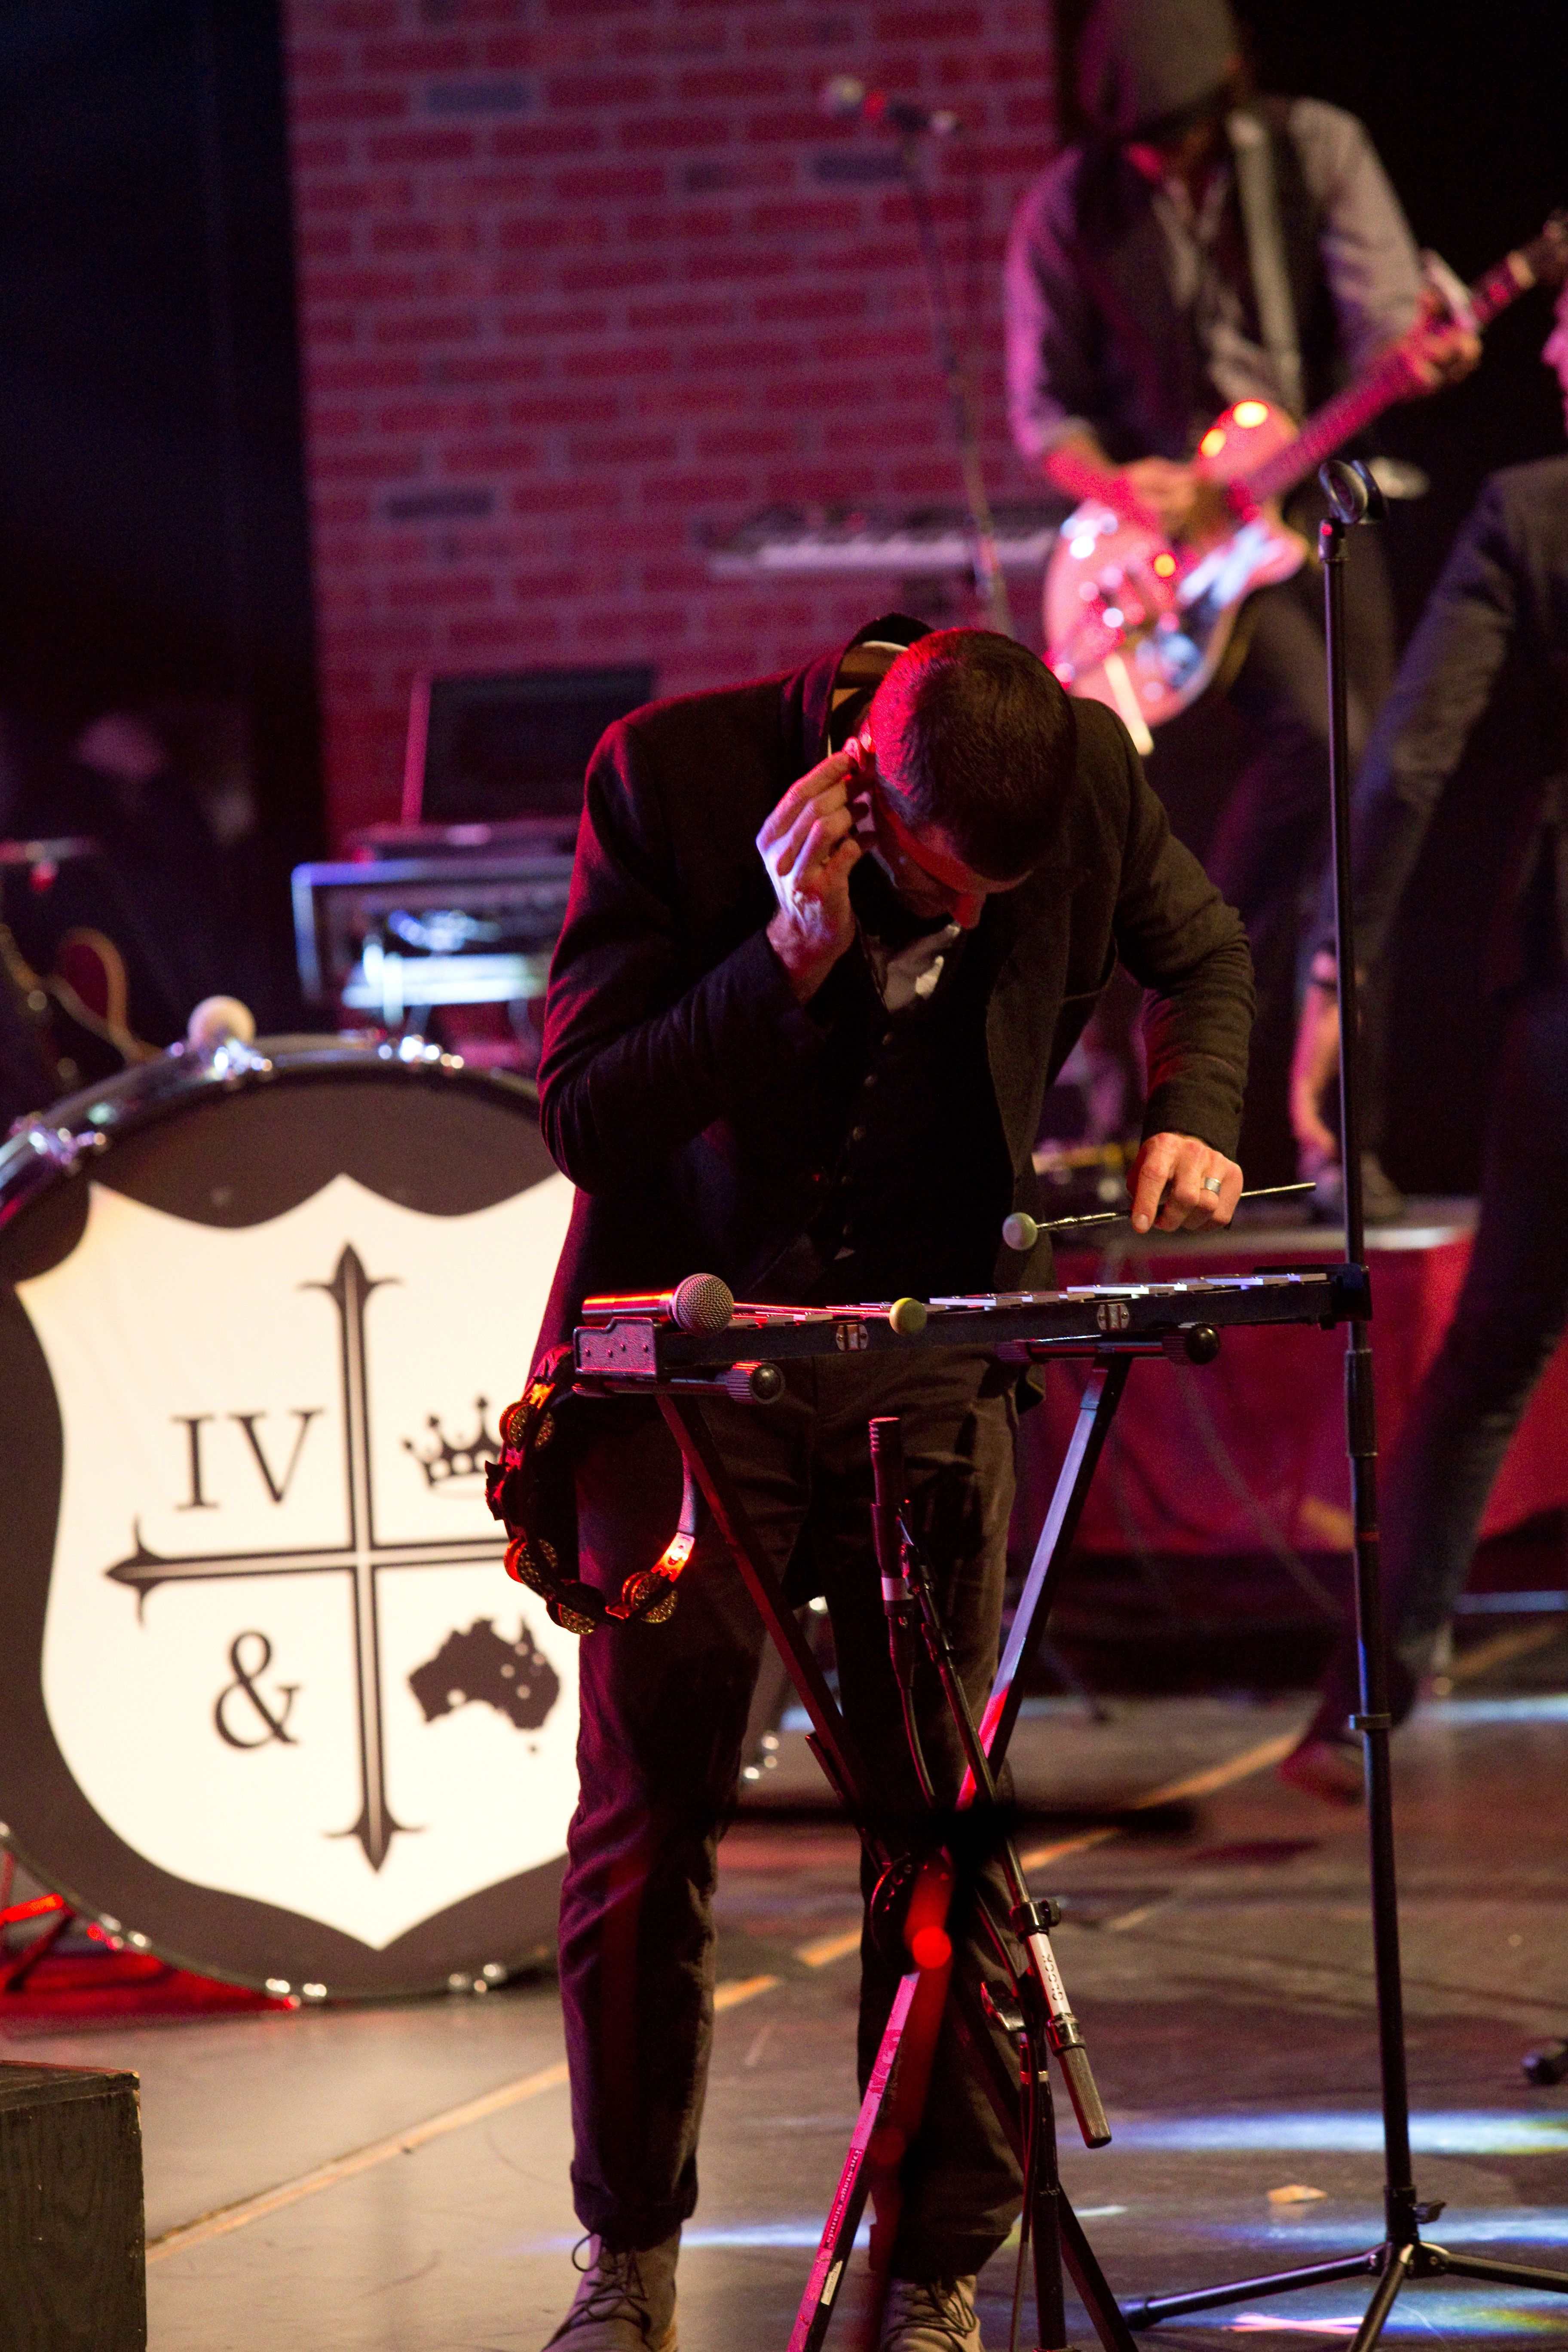 K Love Christmas Tour 2019 Joel from for KING & COUNTRY on the glockenspiel in Indianapolis